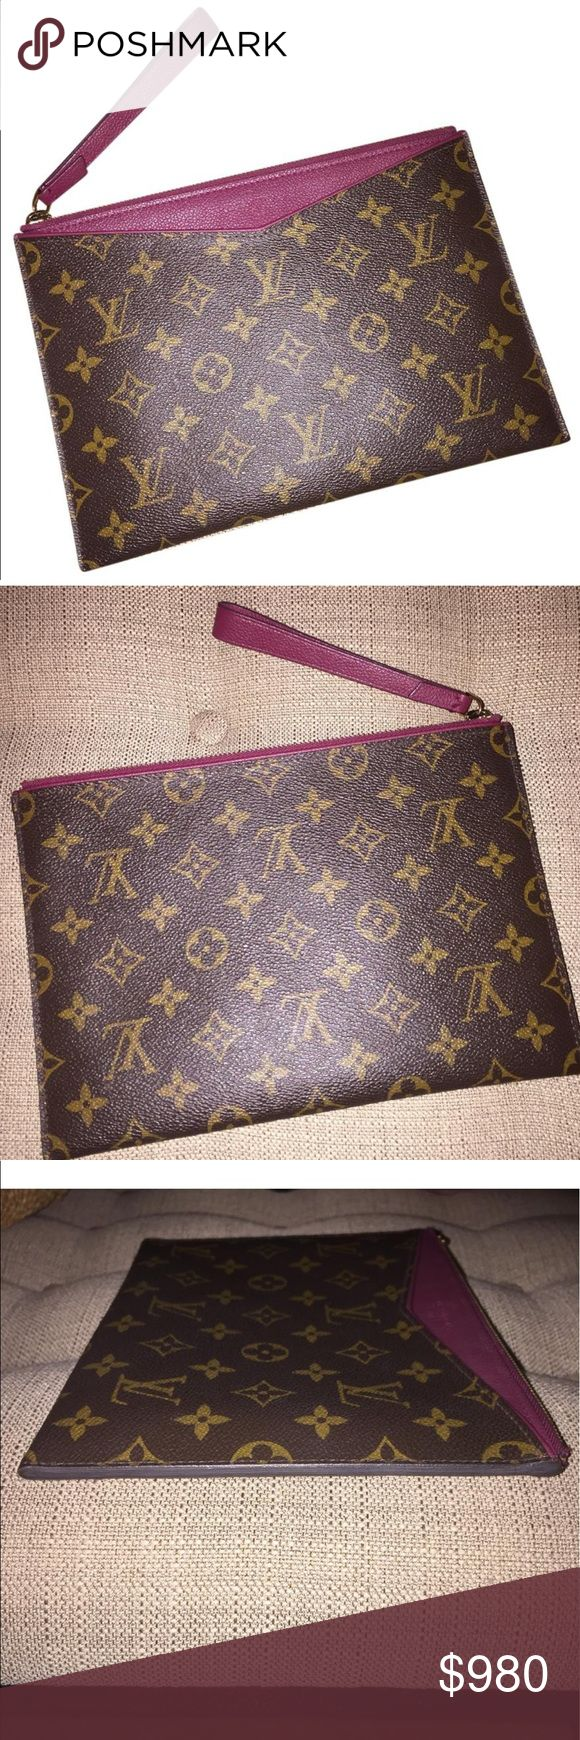 """Rare 🦄 Pallas Pochette in Plum bErry Monogram See item description in pictures. Includes 6 credit card slot on the interior with a flat exterior contrasting pocket.  9.6""""L x .2""""w x 6.8"""" H Louis Vuitton Bags Clutches & Wristlets"""